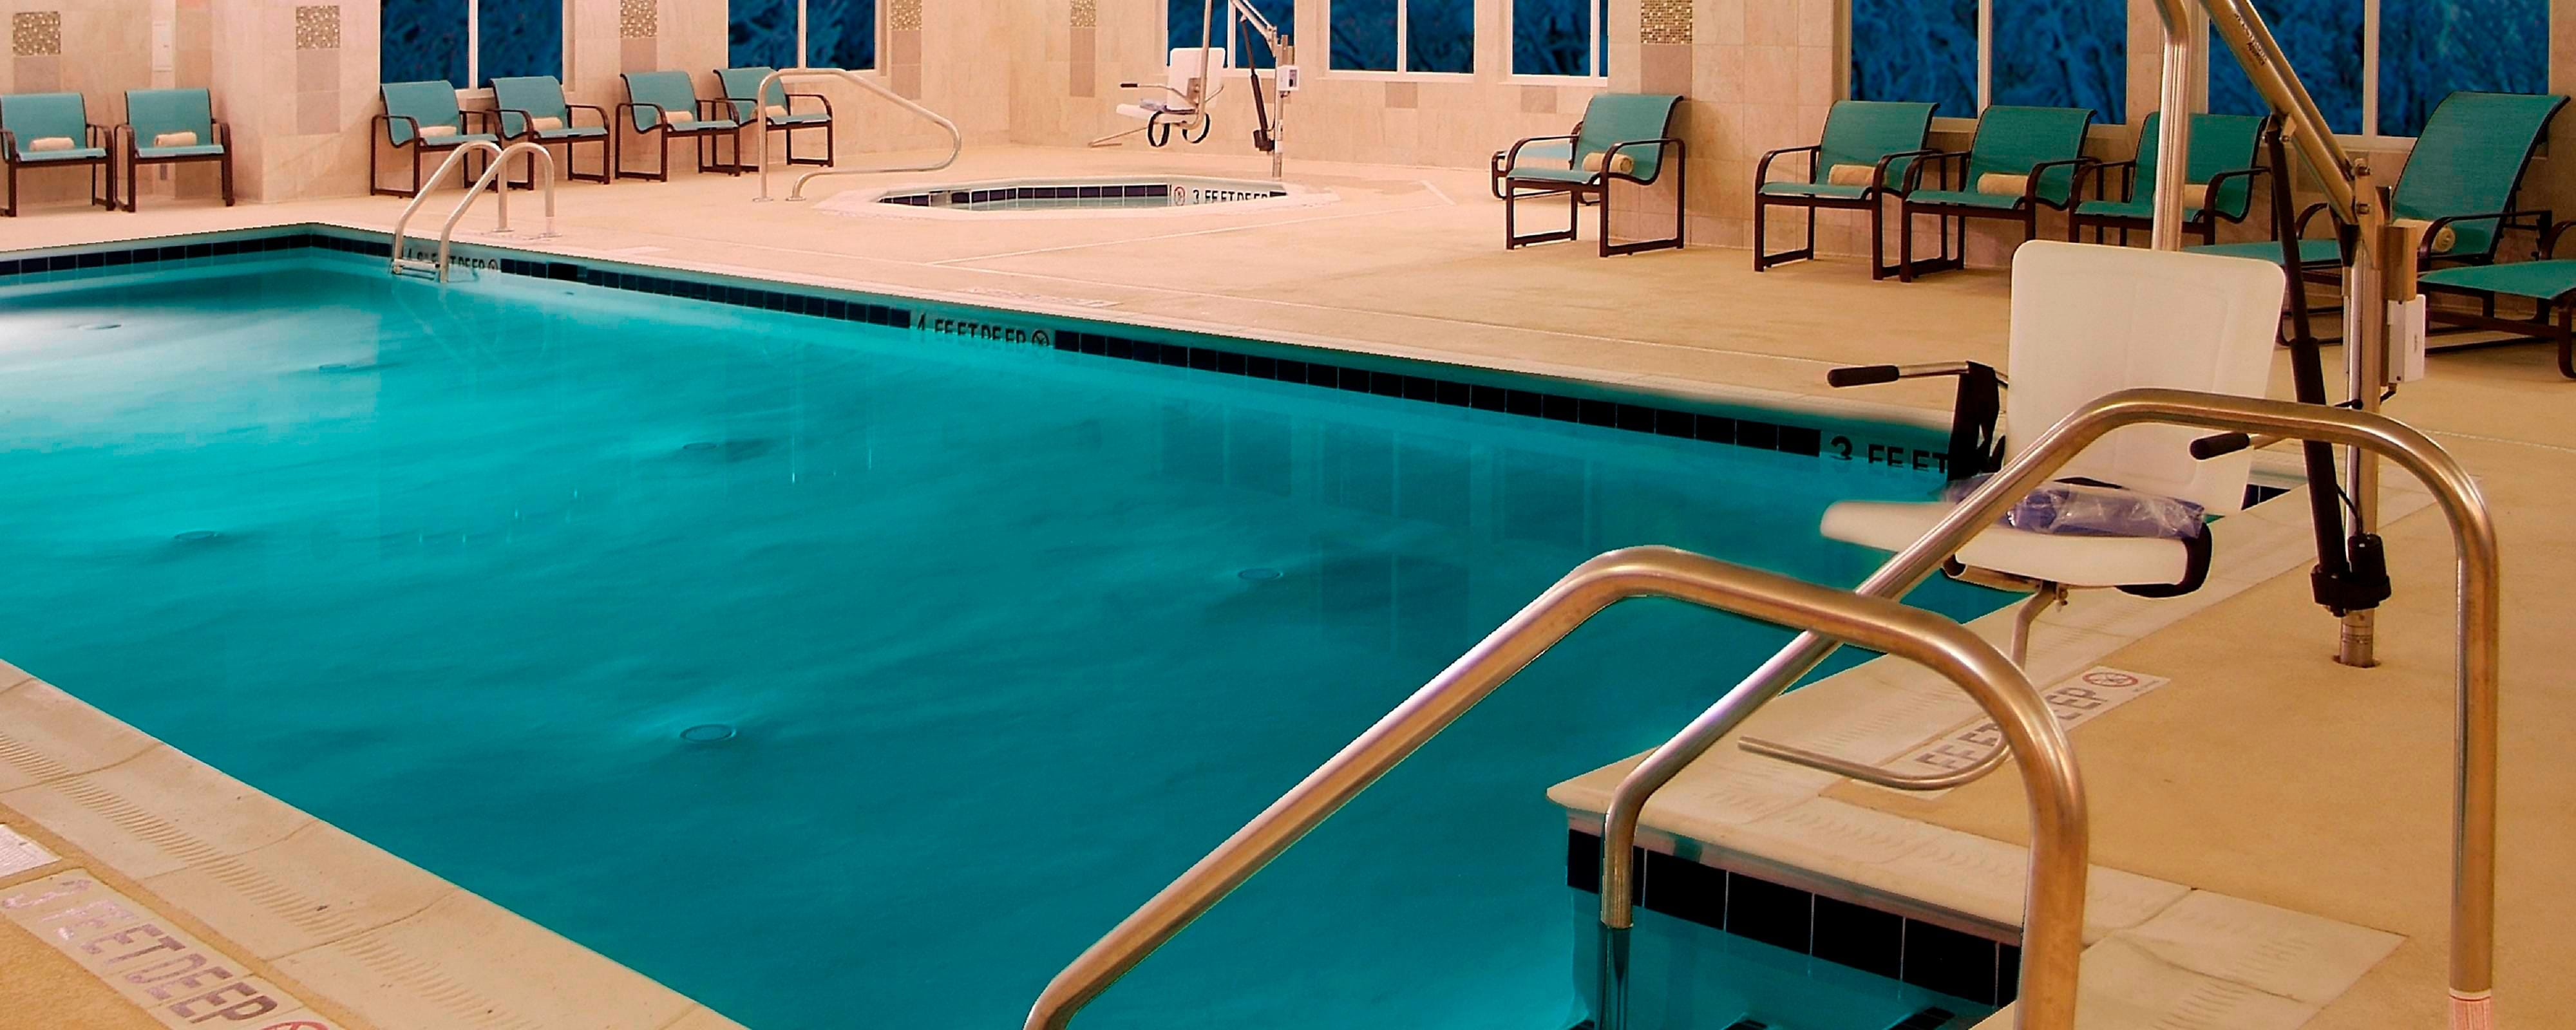 Pool und Fitness Center im Residence Inn Albany